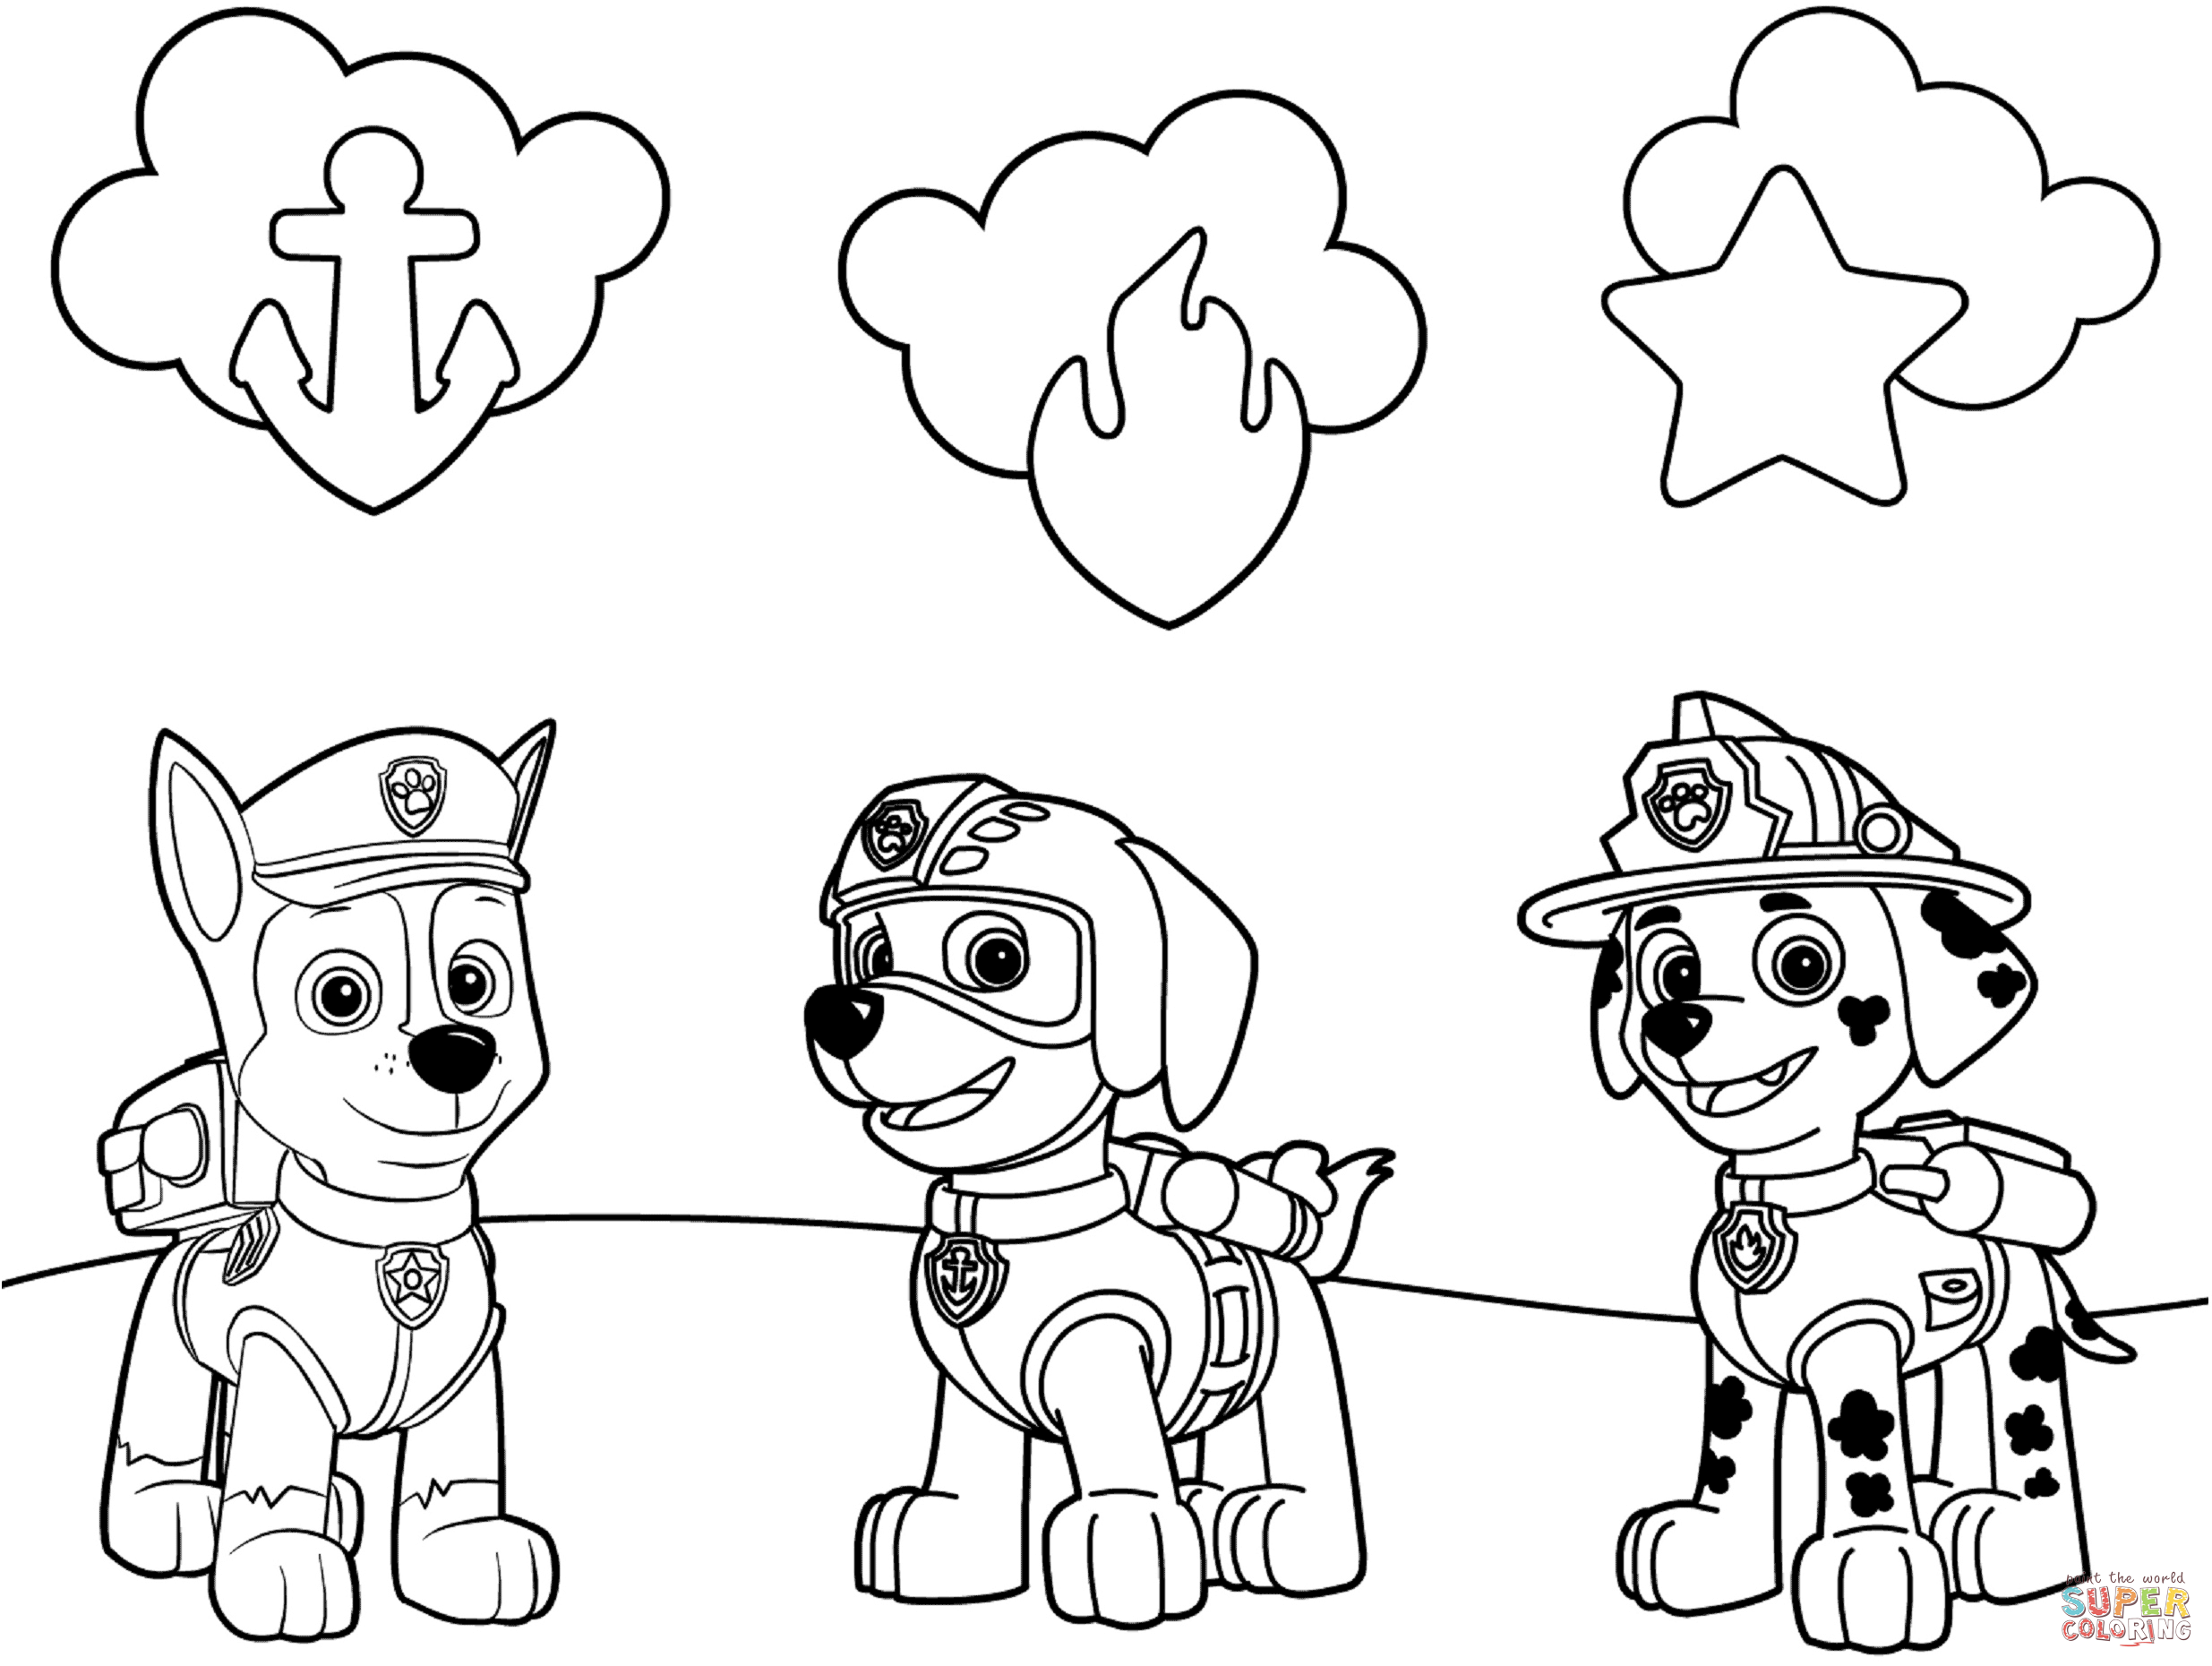 photograph regarding Free Printable Paw Patrol Badges named Paw Patrol Badges Coloring Webpage Cost-free Printable Coloring